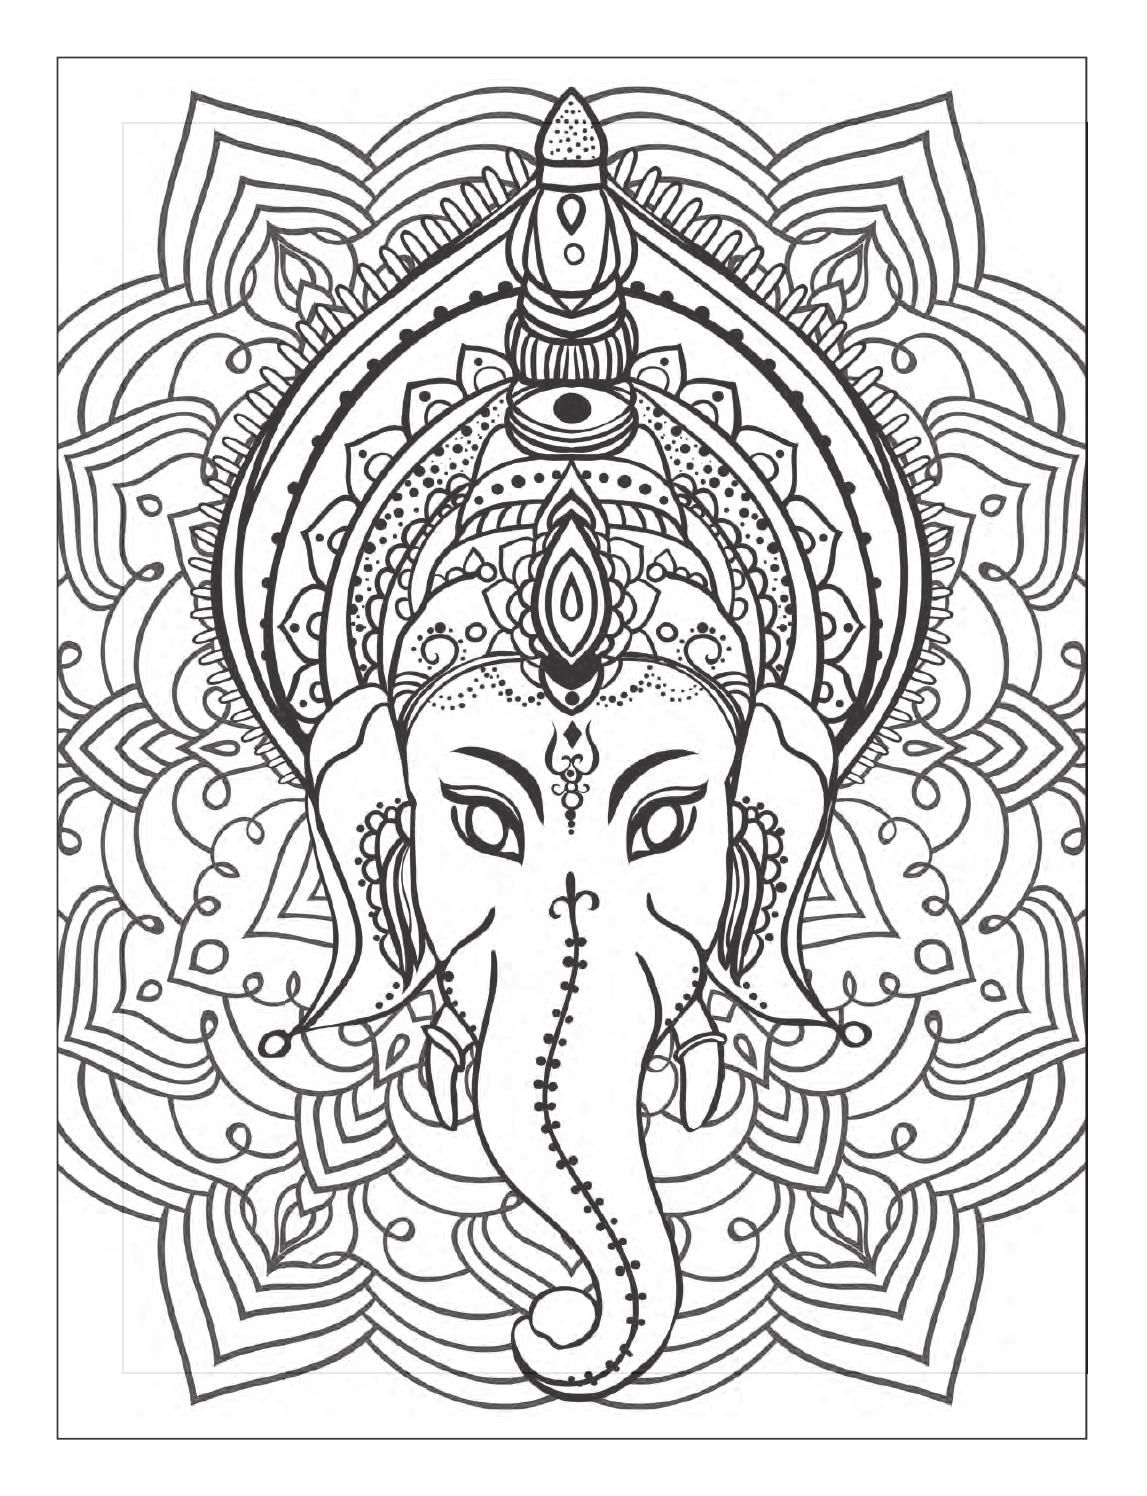 Yoga And Meditation Coloring Book For Adults With Yoga Poses And Mandalas Coloring Books Designs Coloring Books Mandala Coloring [ 1496 x 1147 Pixel ]